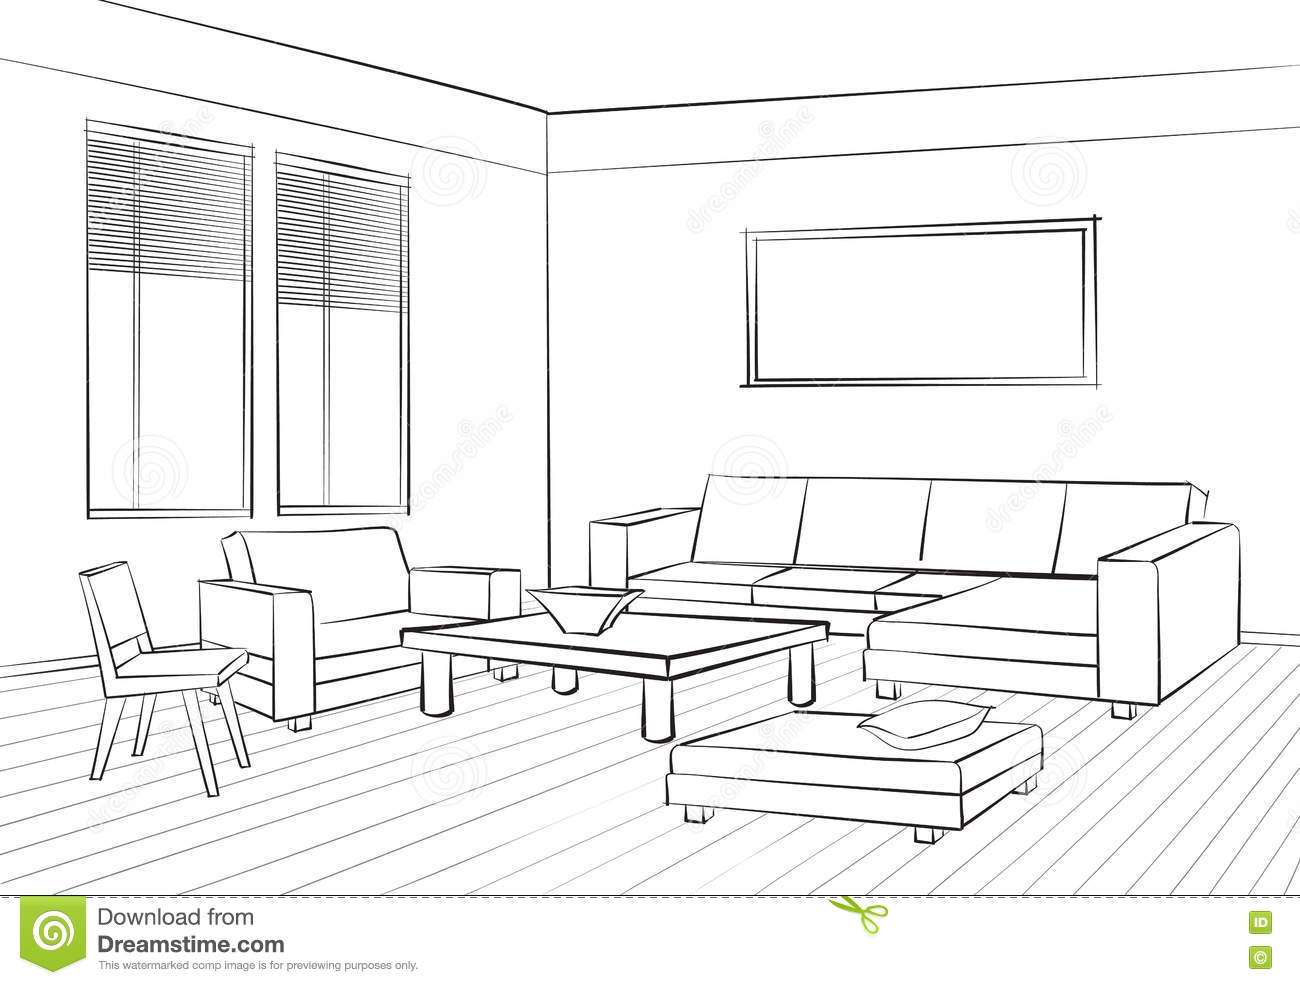 Living room design room interior sketch interior furniture for Drawing room design